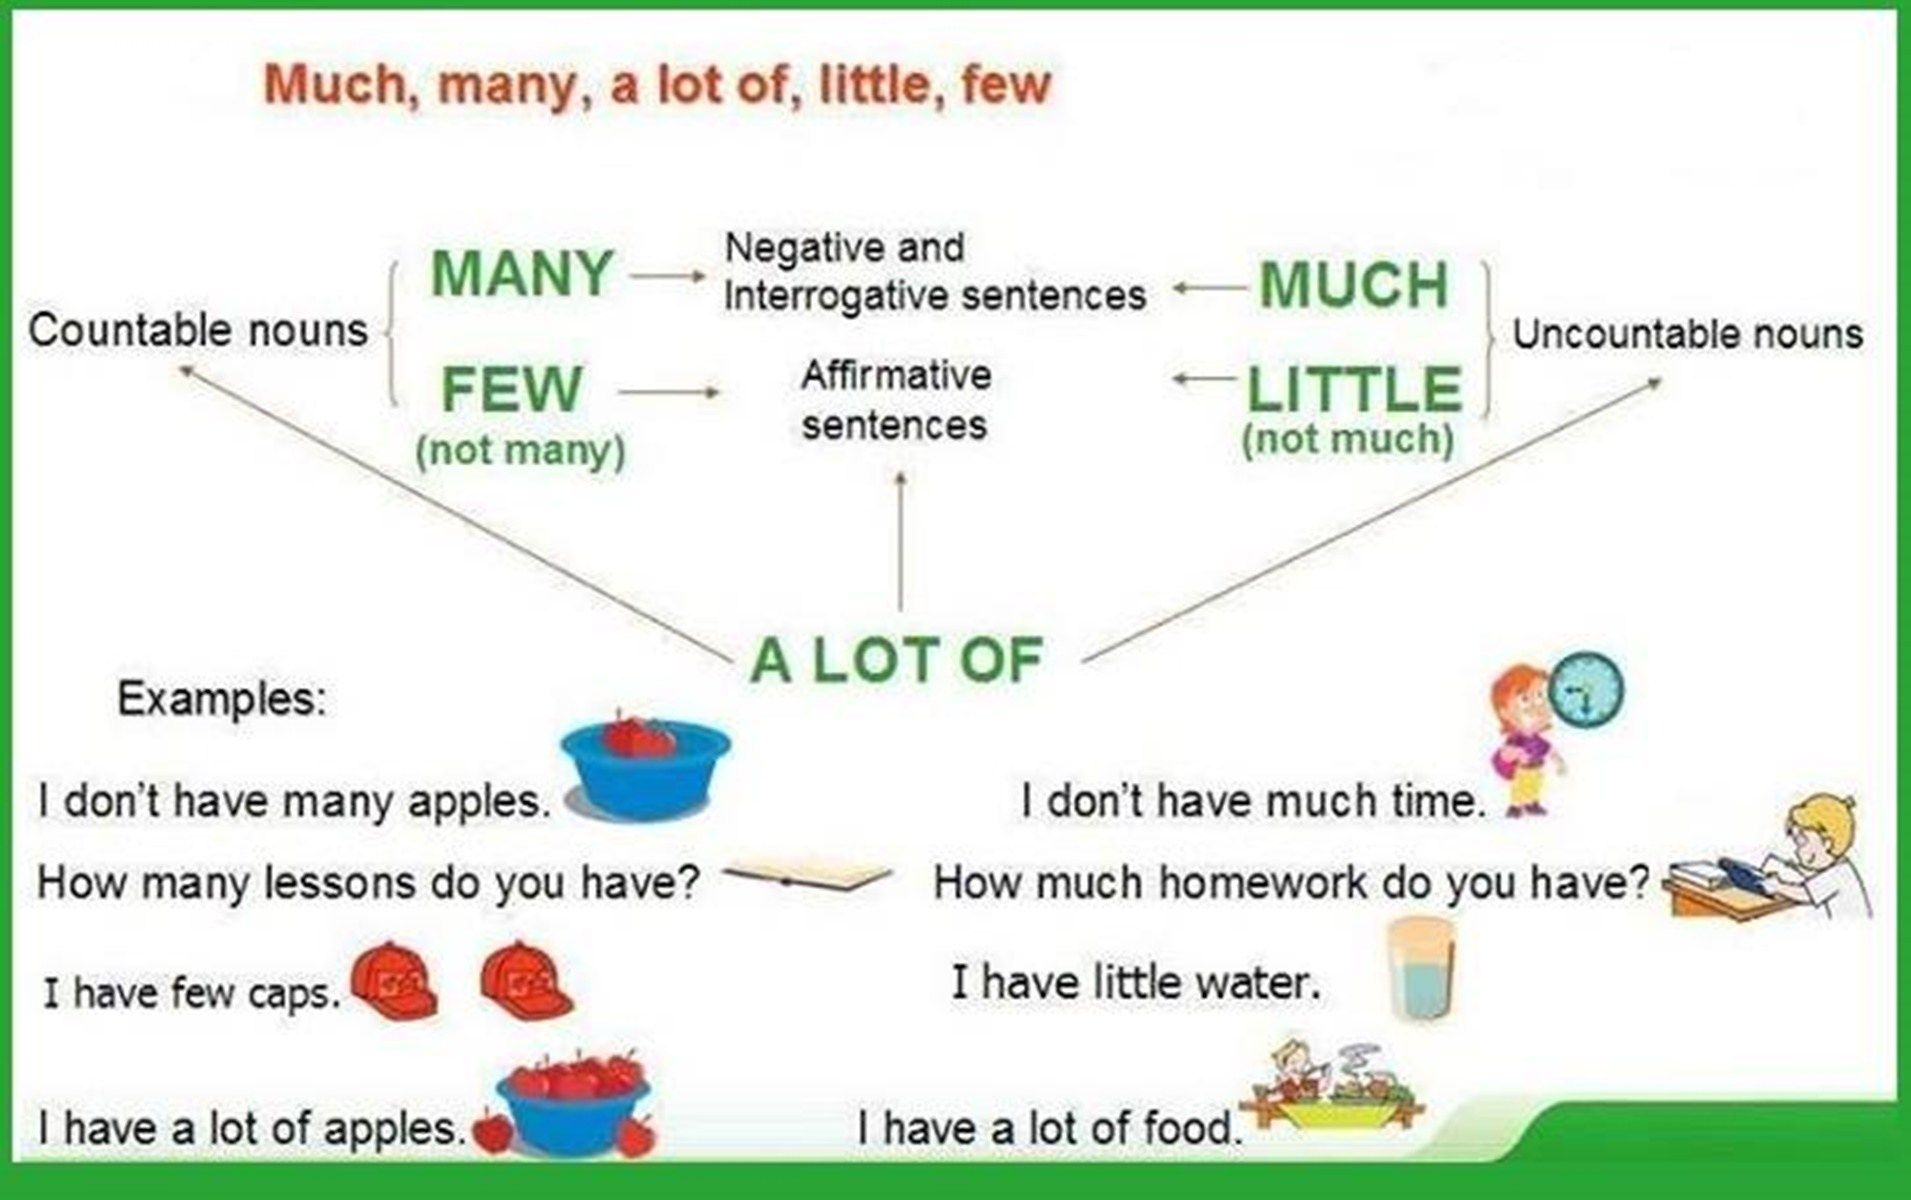 Learn English Grammar Through Pictures 10 Topics Illustrated